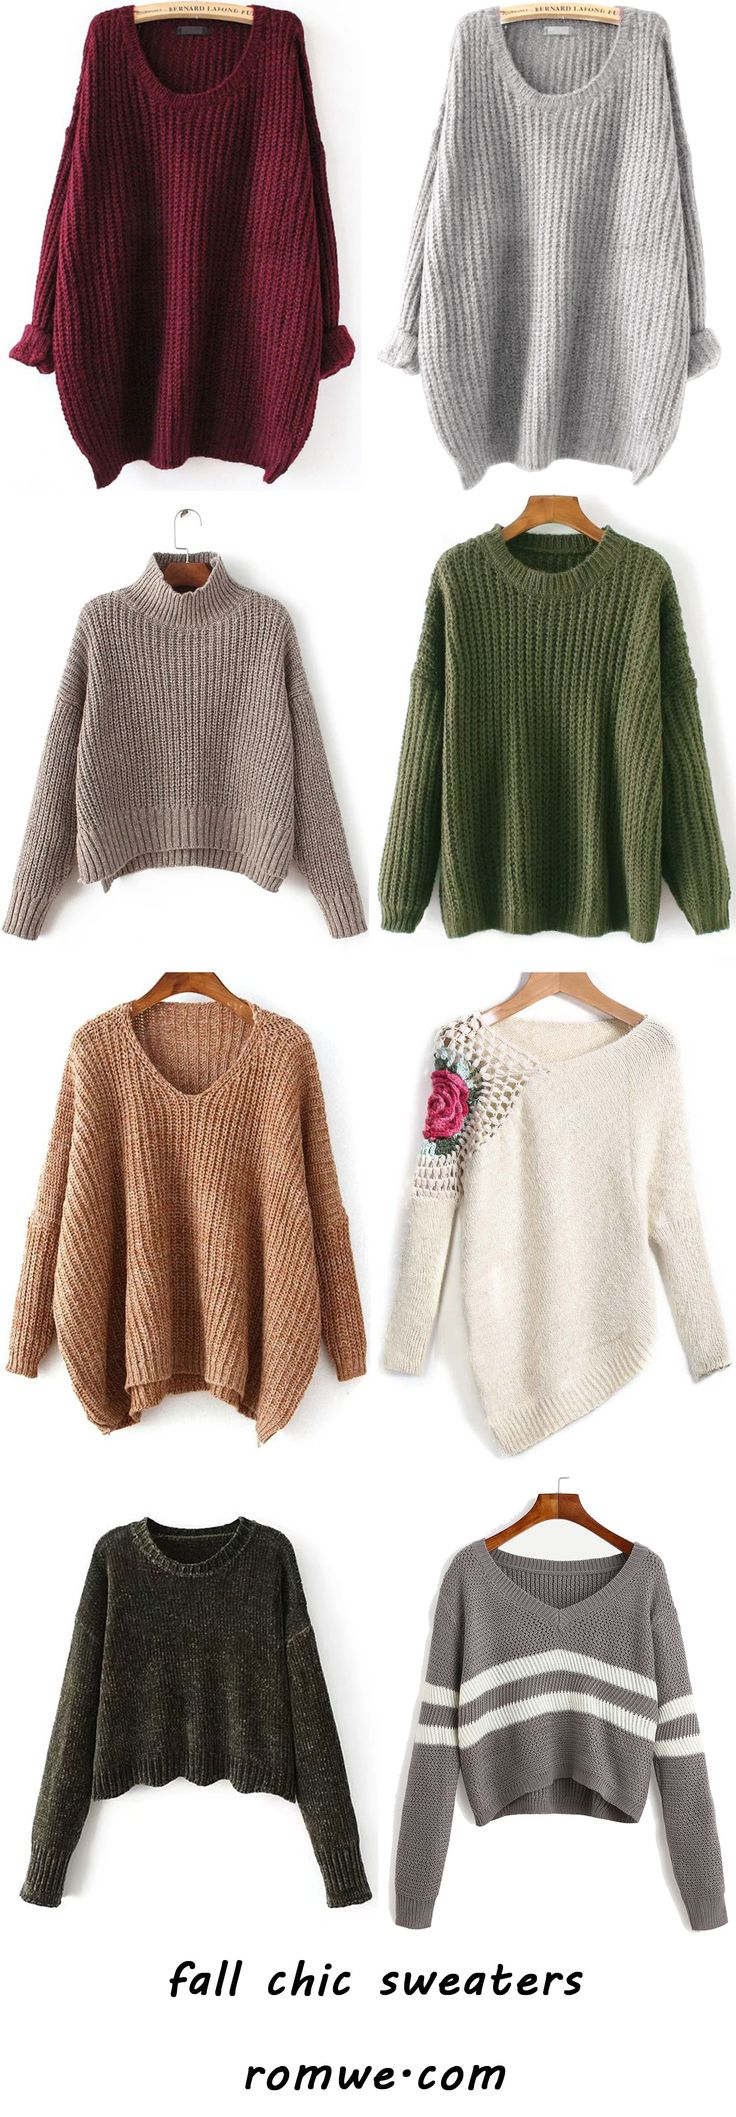 chic fall sweaters 2017 - romwe.com